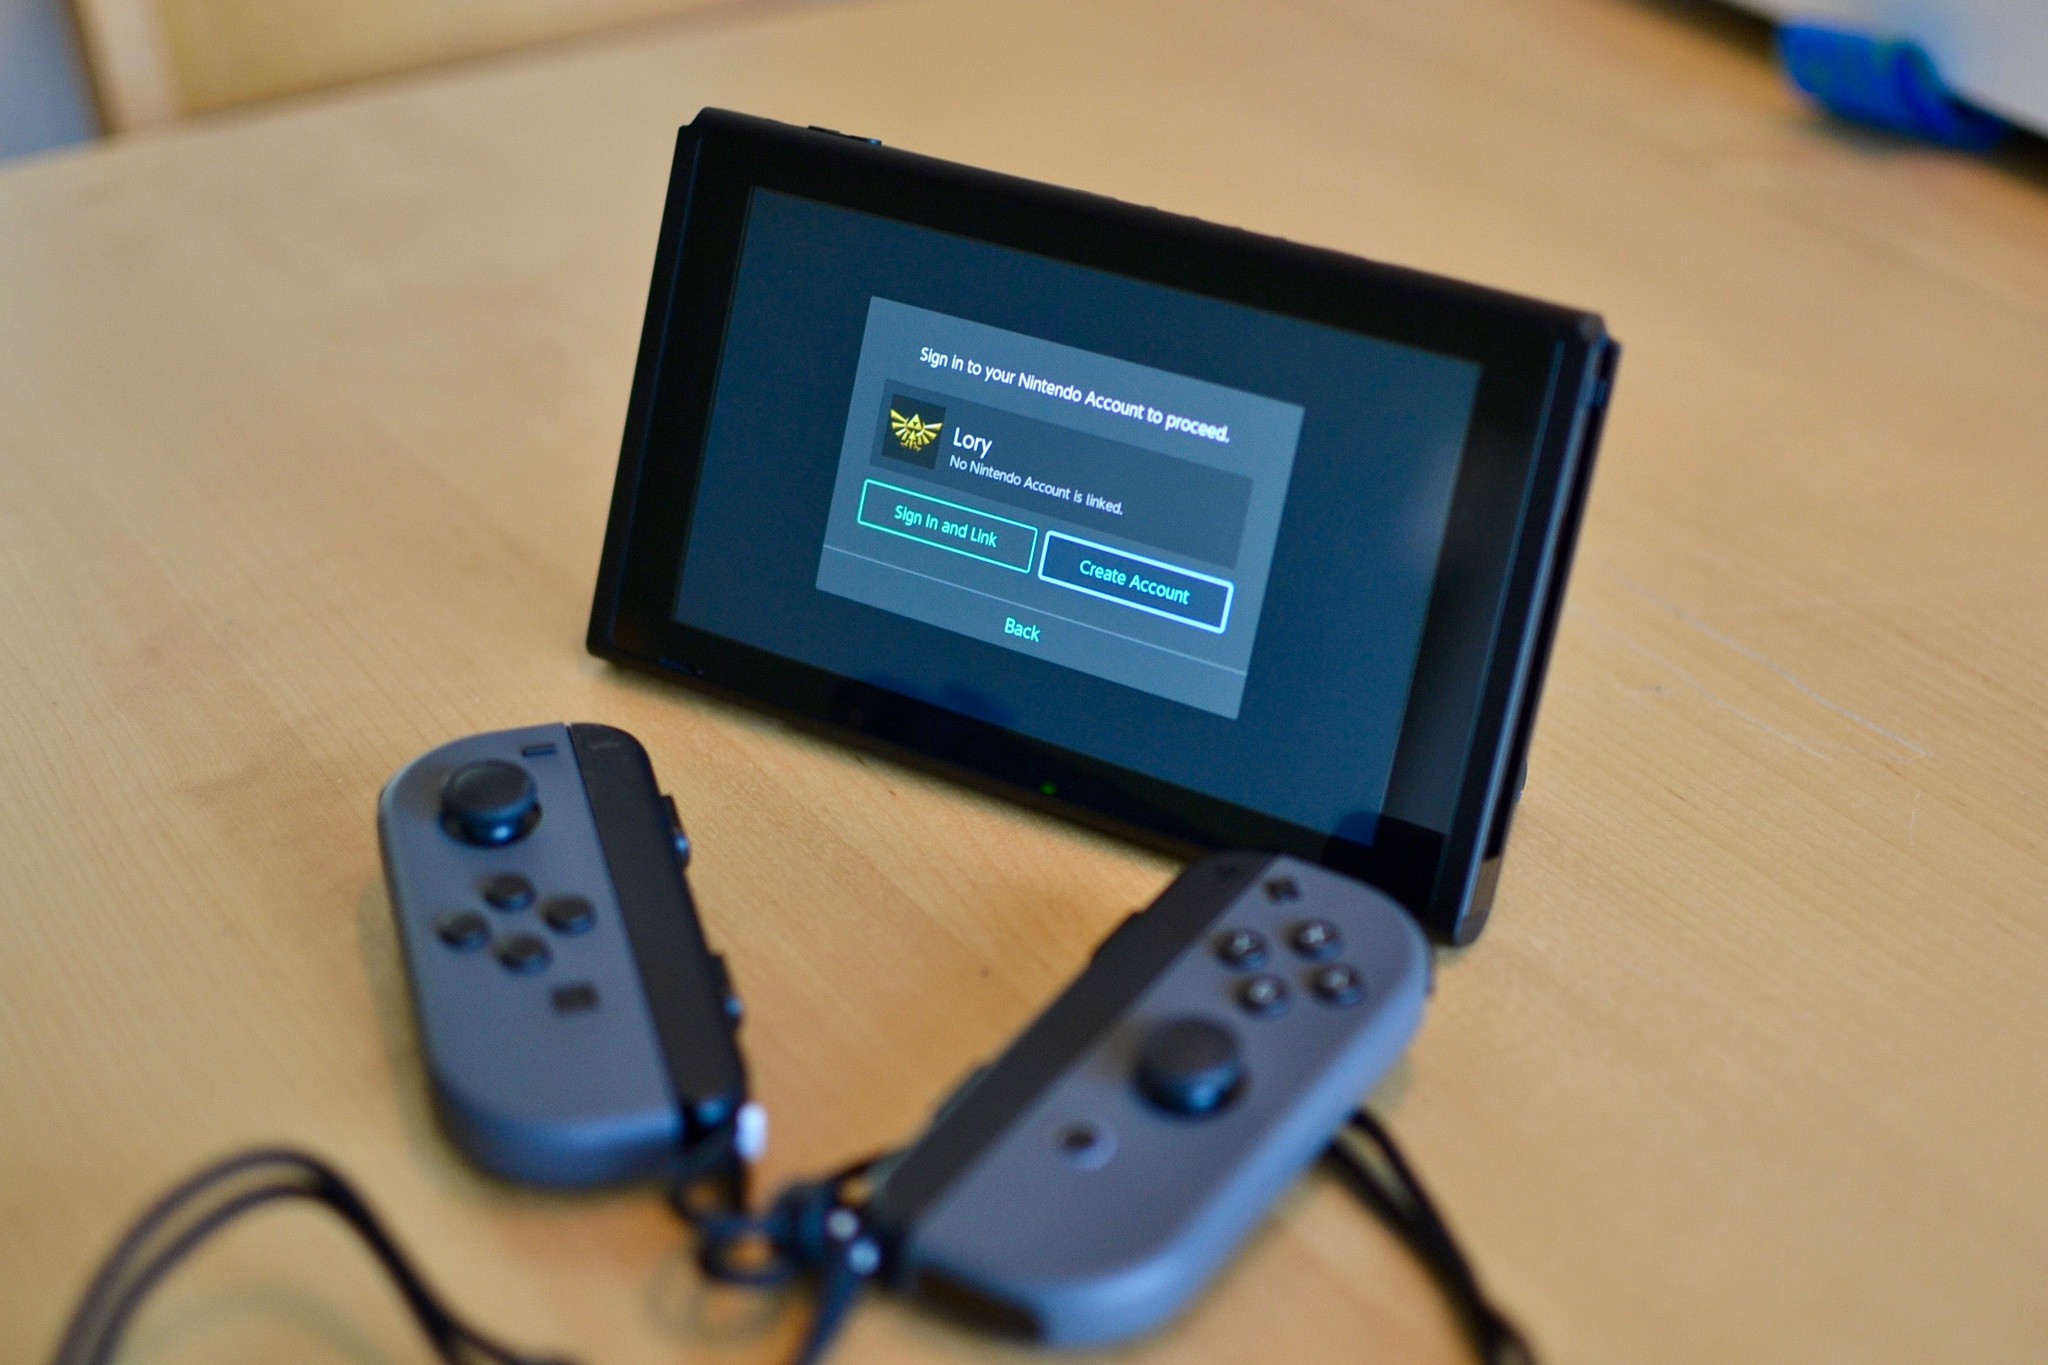 How To Transfer A Digital Game From One Nintendo Switch To